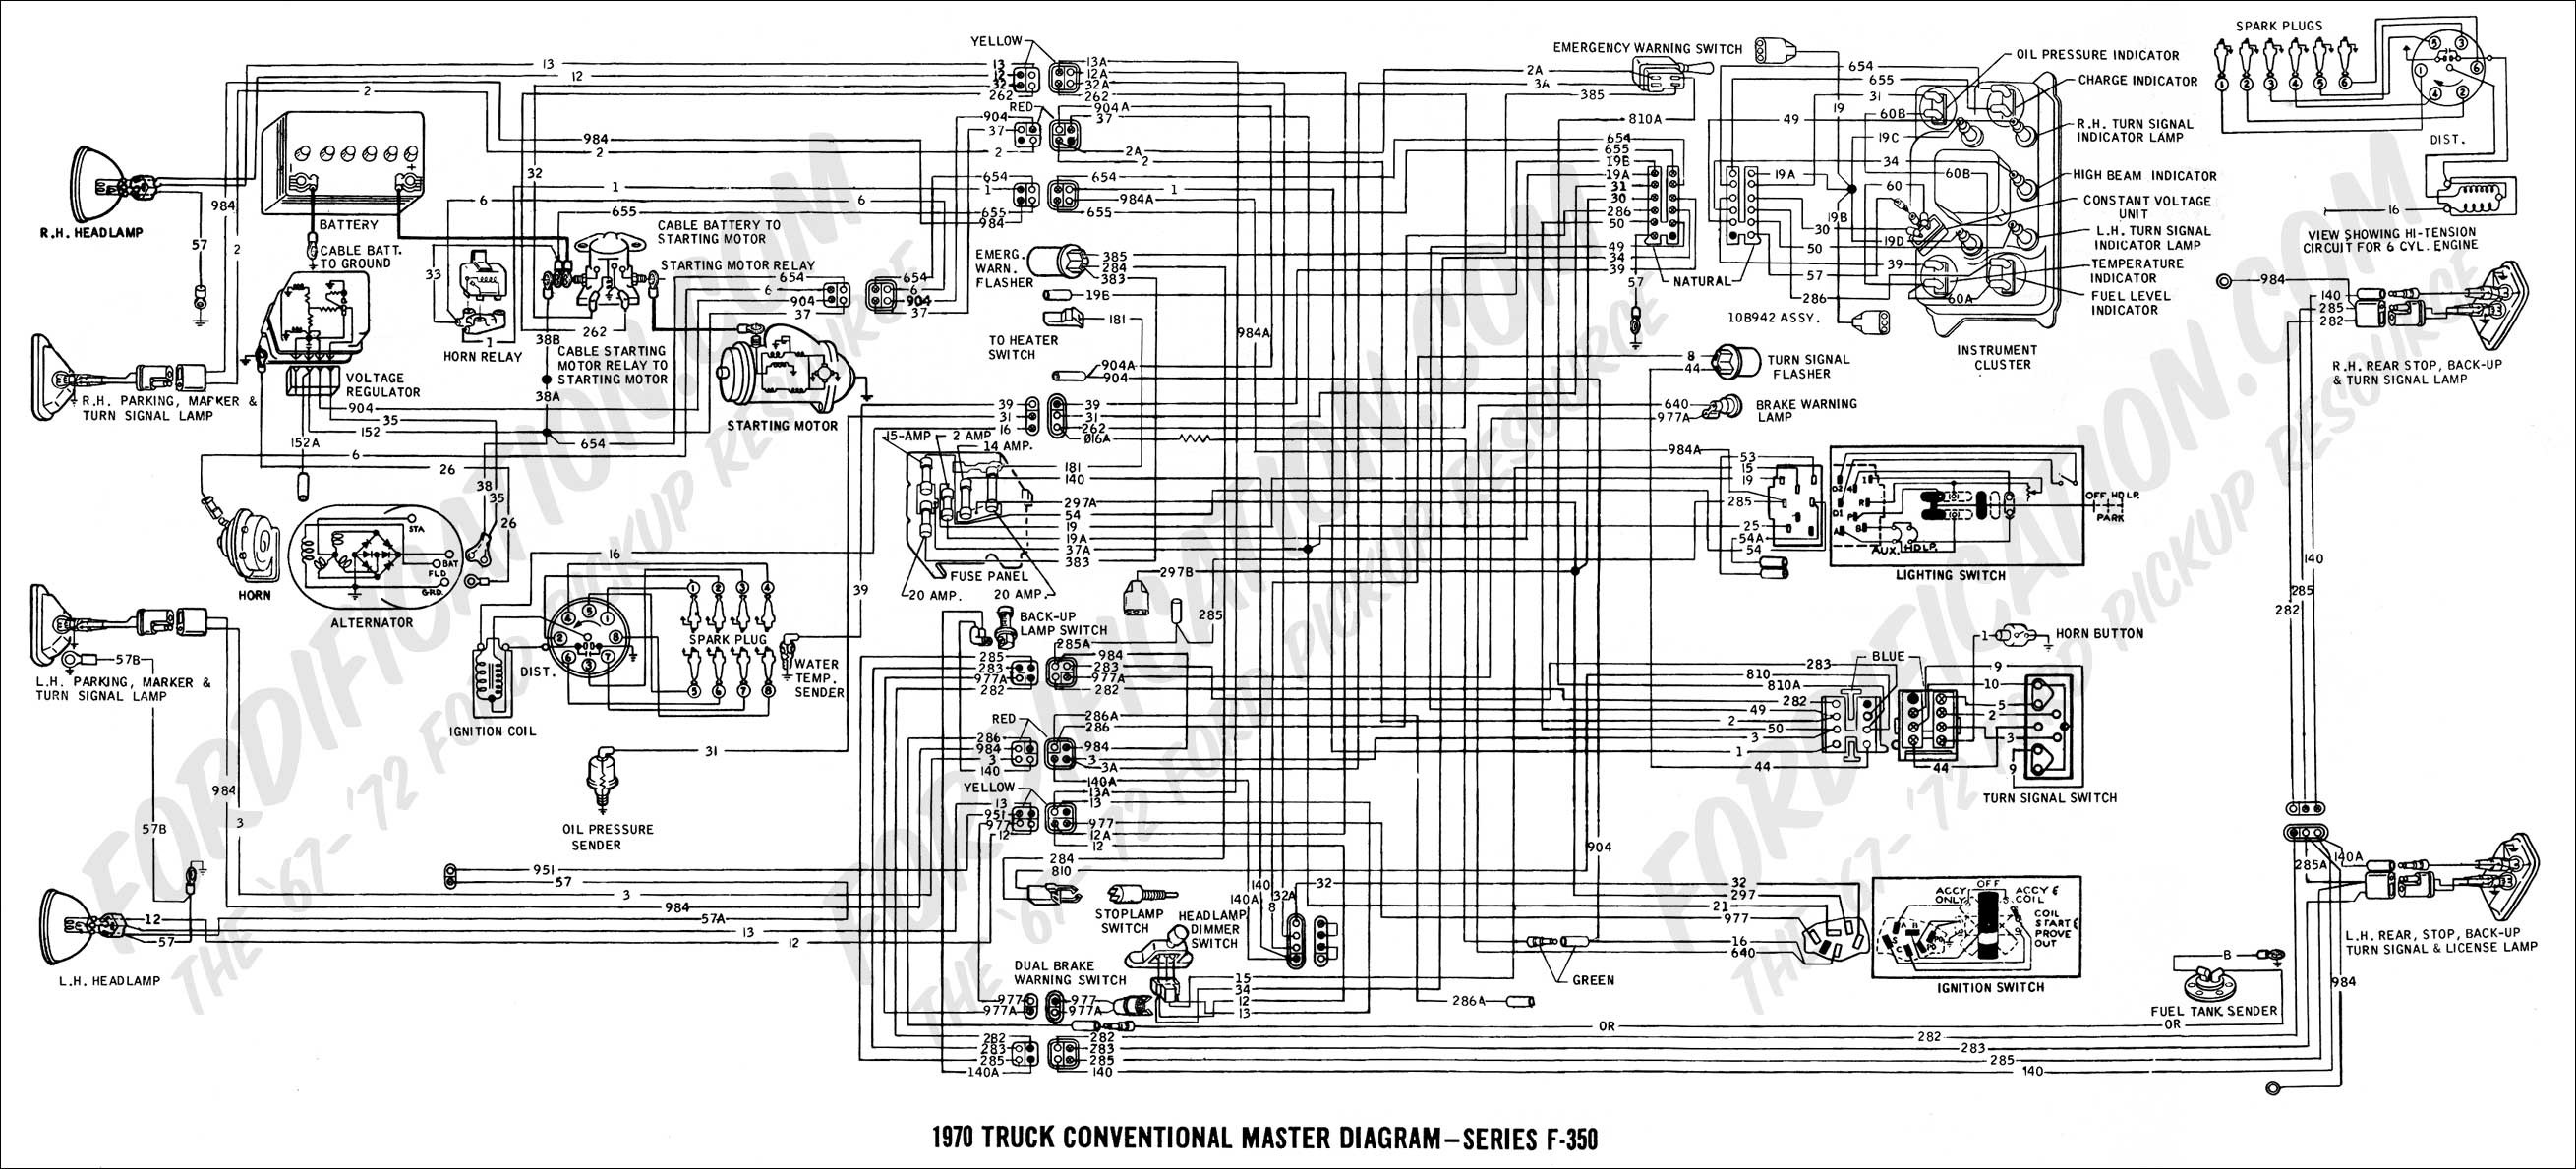 2013 Ford Escape Engine Diagram Mustang Wiper Motor Truck Technical Drawings And Schematics Section H Wiring Fair Of